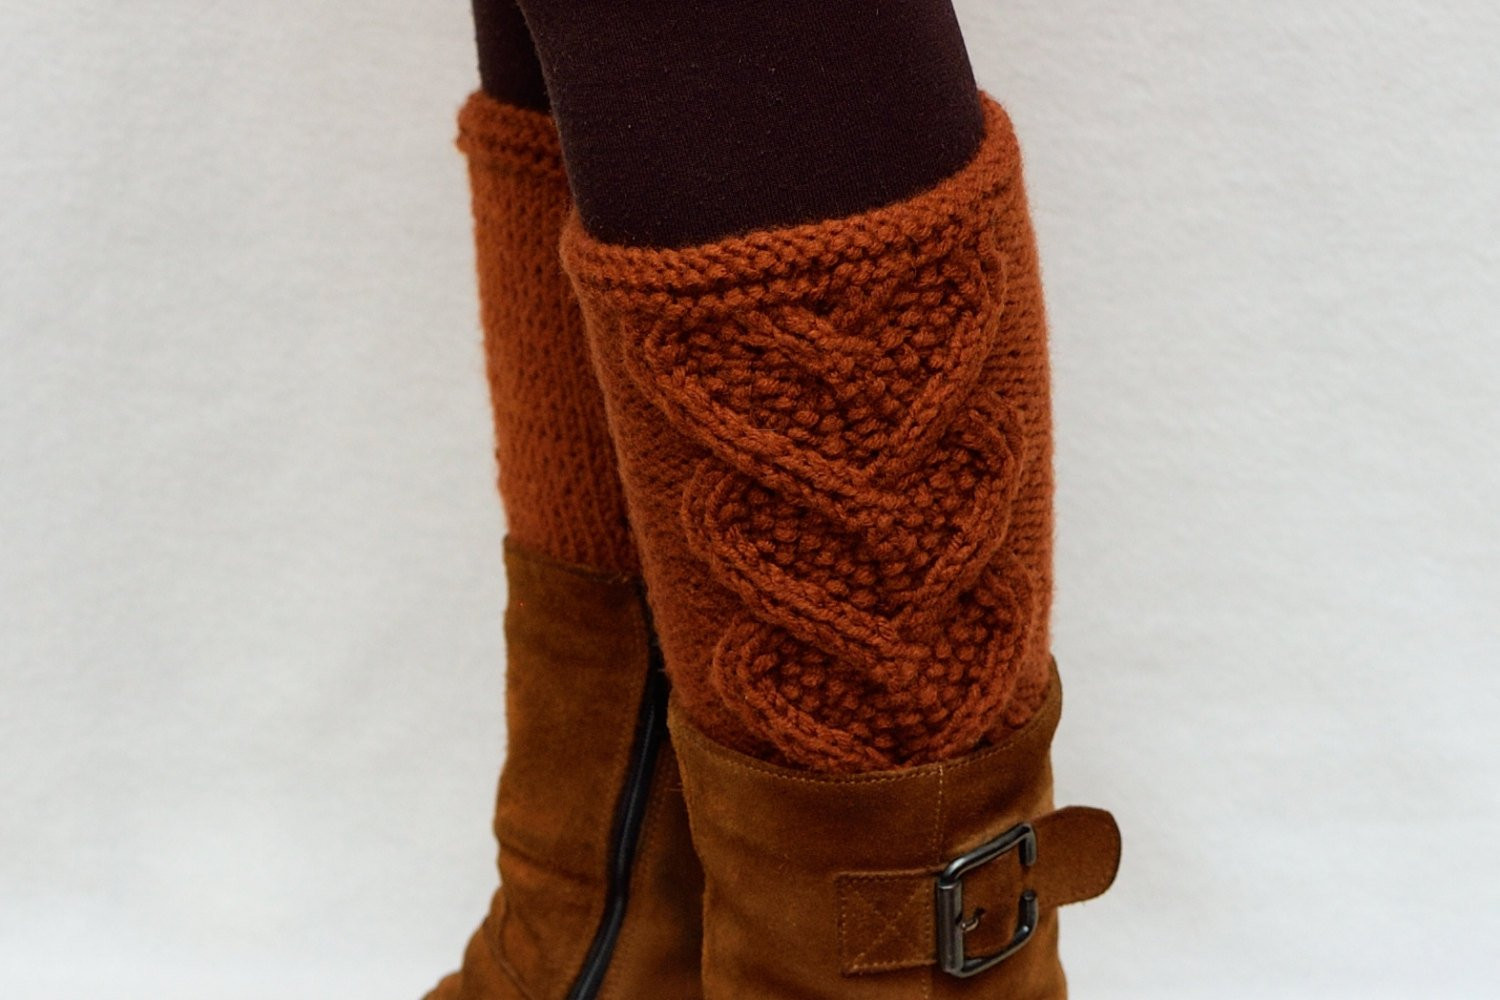 Inspirational Boot Cuffs Hand Knitted Leg Warmers Womens Boot toppers Knitted Boot Cuffs Of Awesome Kriskrafter Free Knit Pattern 2 Needle Boot toppers Cuffs Knitted Boot Cuffs